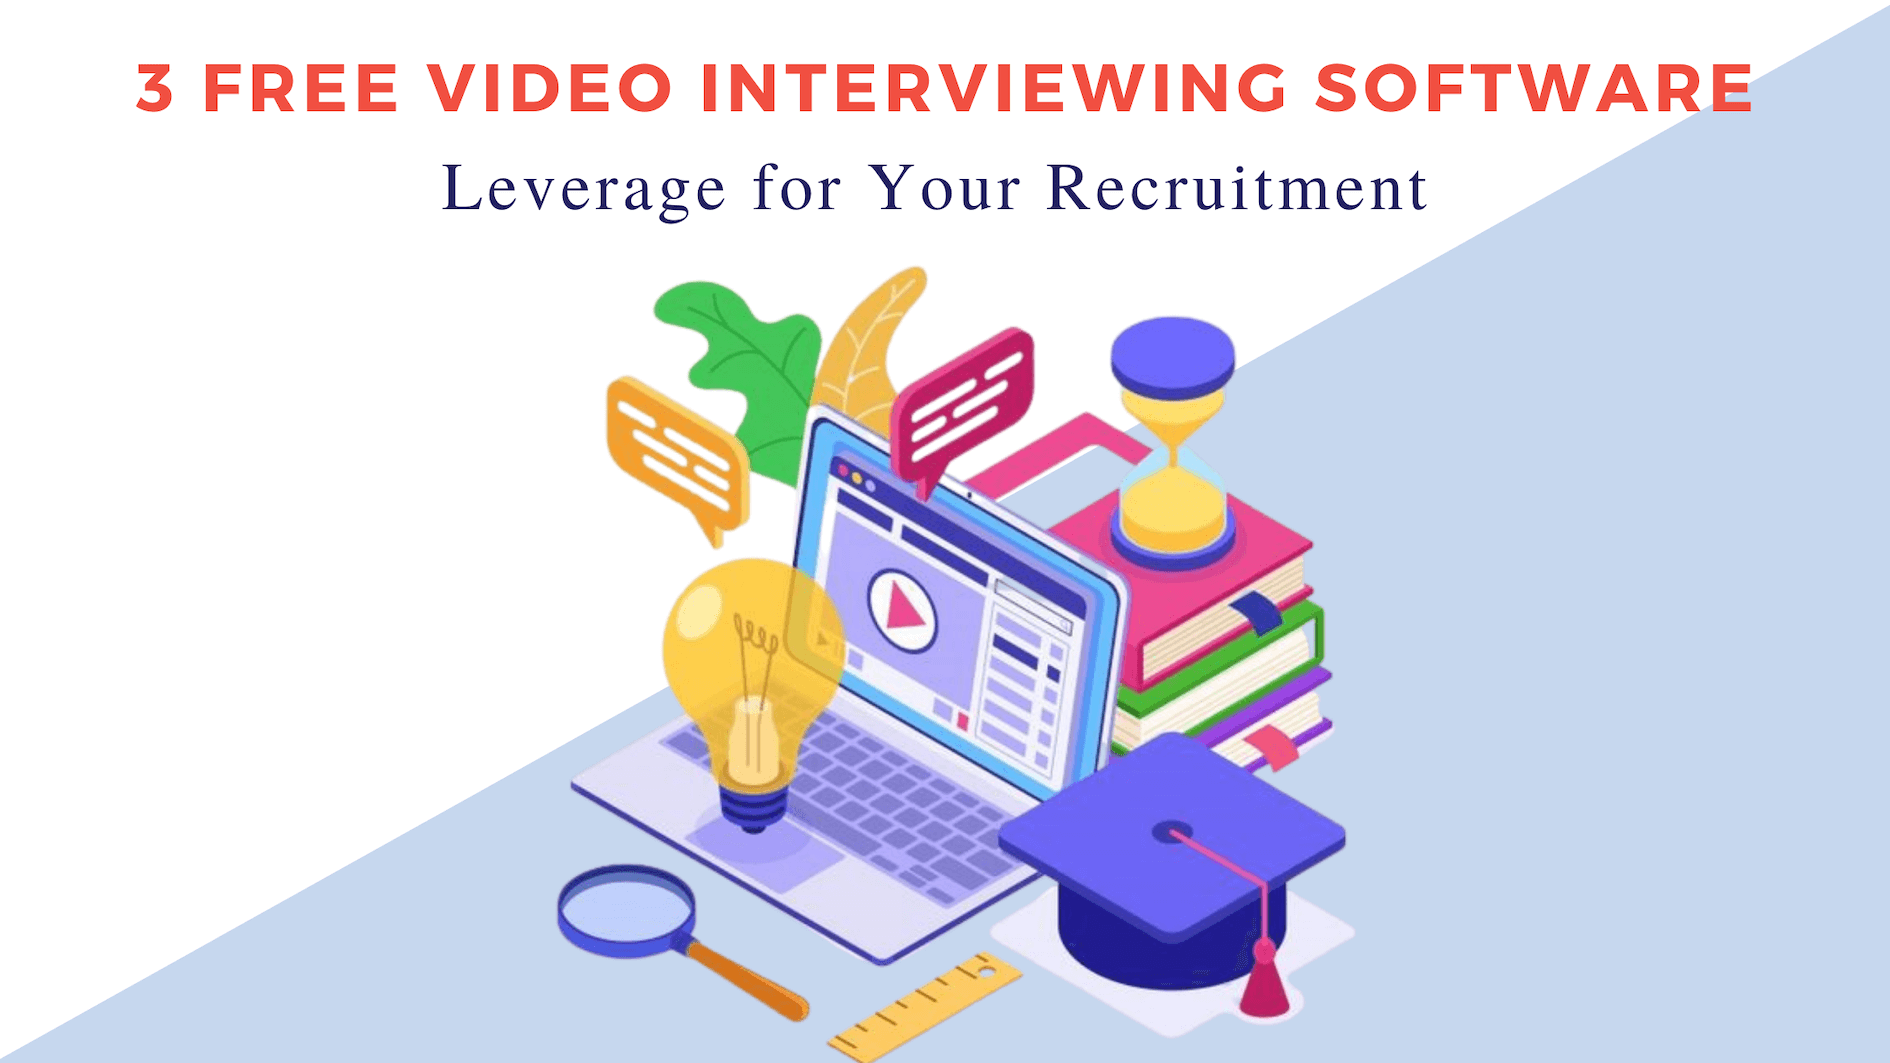 Top 3 Best Free Video Interviewing Software for Recruiters